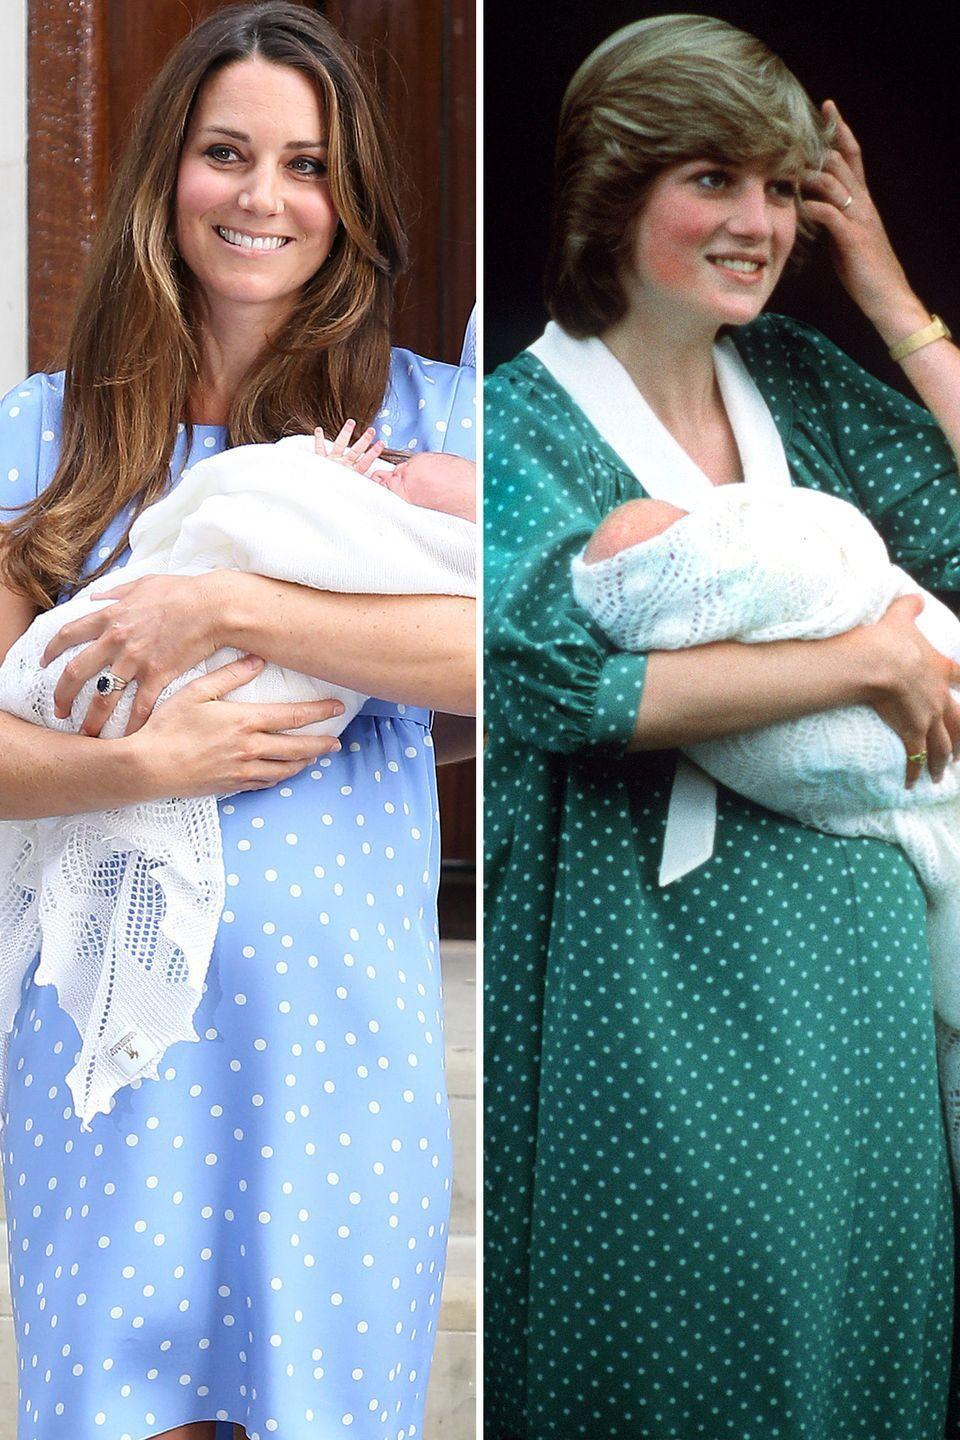 "<p>As <a href=""https://www.townandcountrymag.com/society/tradition/a19674665/kate-middleton-post-birth-appearance-differences-comparison/"" rel=""nofollow noopener"" target=""_blank"" data-ylk=""slk:Town & Country"" class=""link rapid-noclick-resp""><em>Town & Country</em></a> points out, the billowy dress was very similar to the one Diana wore when leaving the hospital with Prince William 30 years earlier. Aww!</p>"